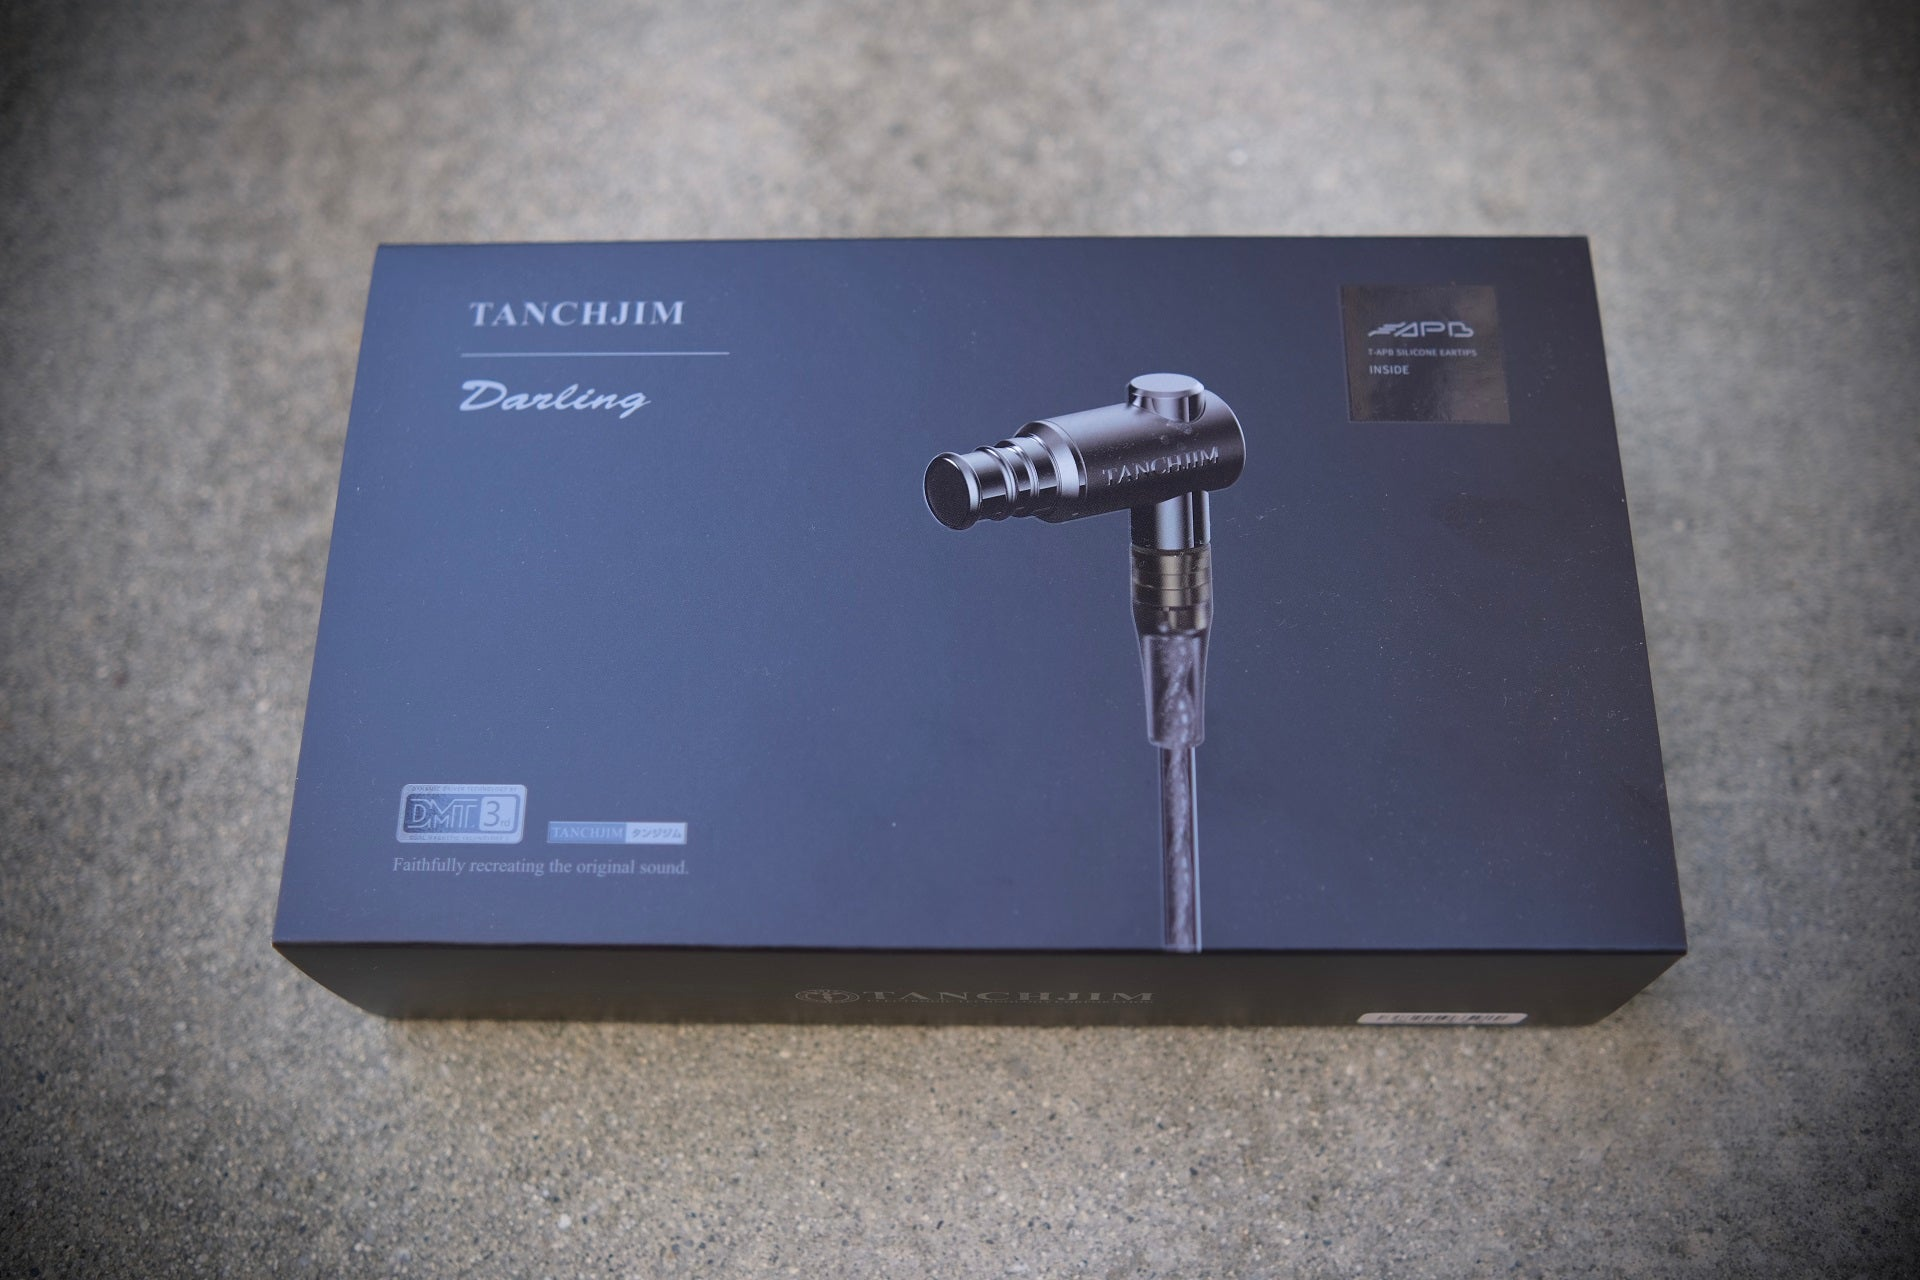 Tanchjim Darling Review | Headphones.com